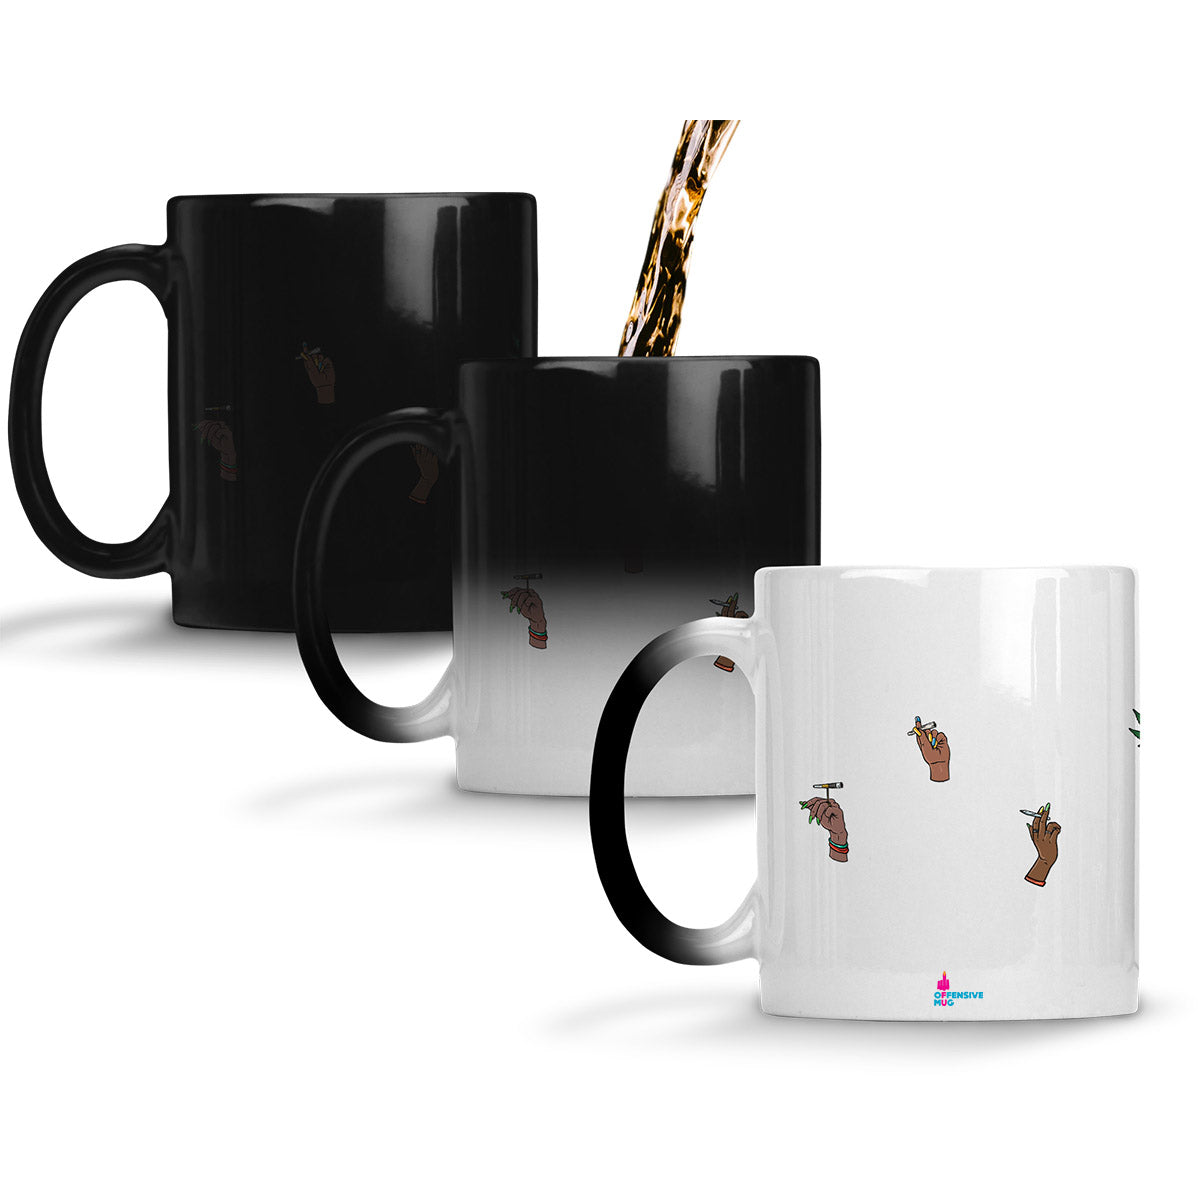 Teresa Magic Mug - Offensive Mug